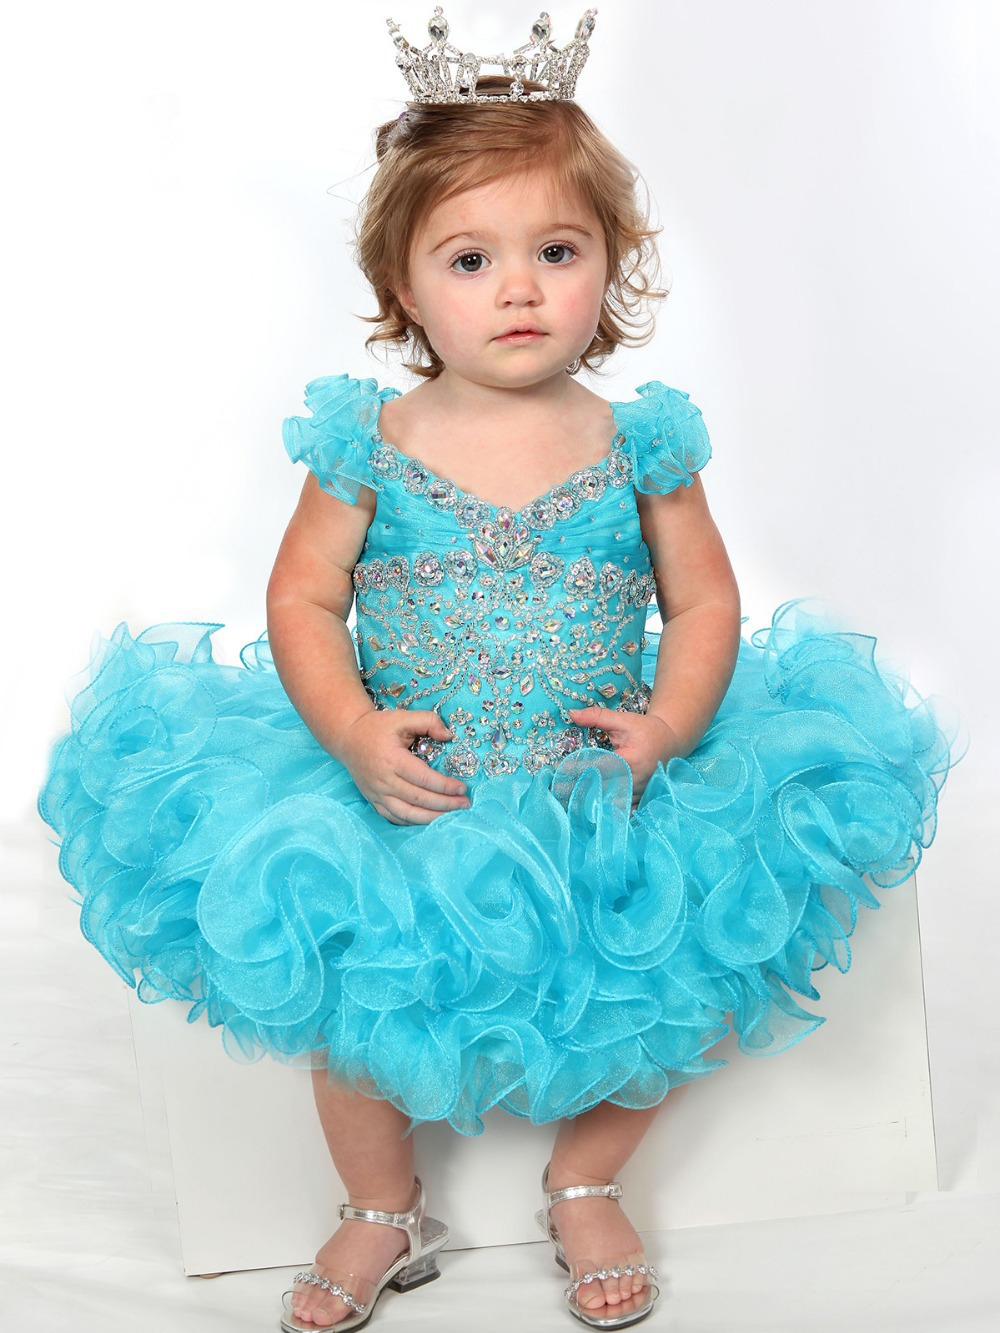 2014 turquoise beads crystals short sleeves instant baby girls pageant dress cupcake style tutu ruffled 6 month-2-14 years old(China (Mainland))